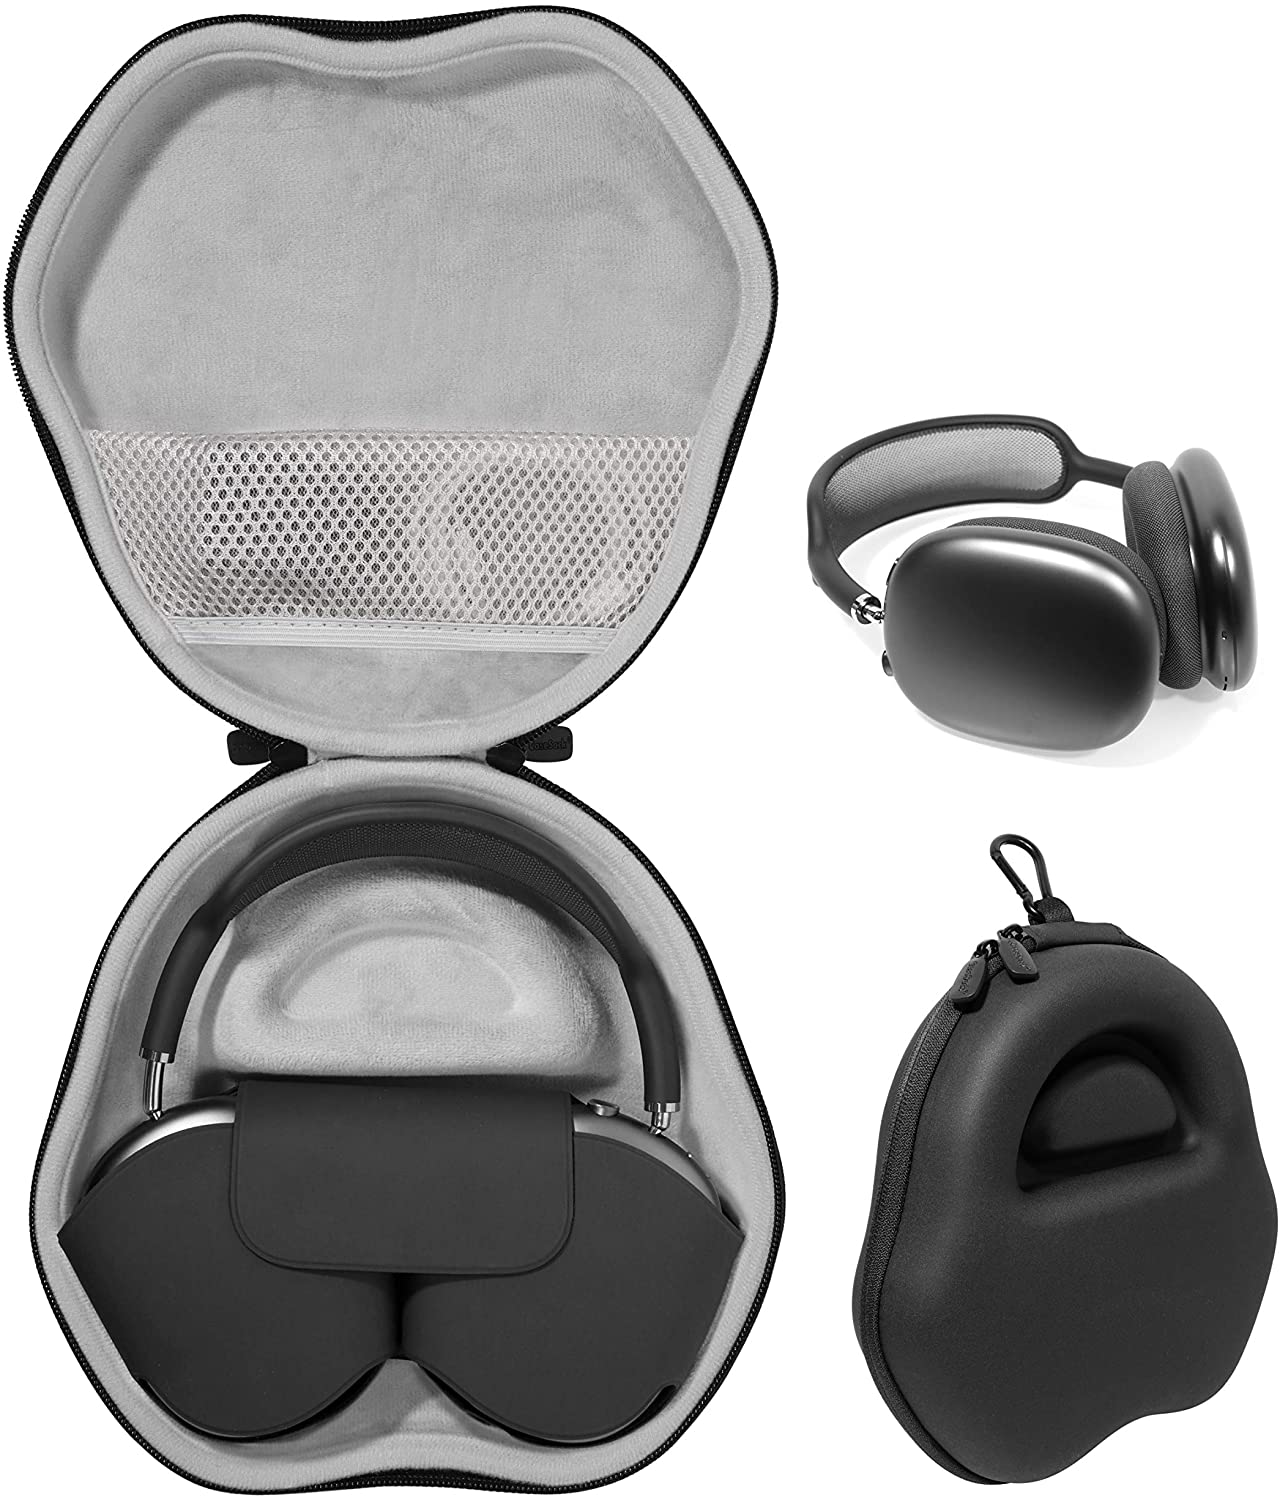 CaseSack Case for New Apple AirPods Max Headphones, for The Headphones with Cover (Black)